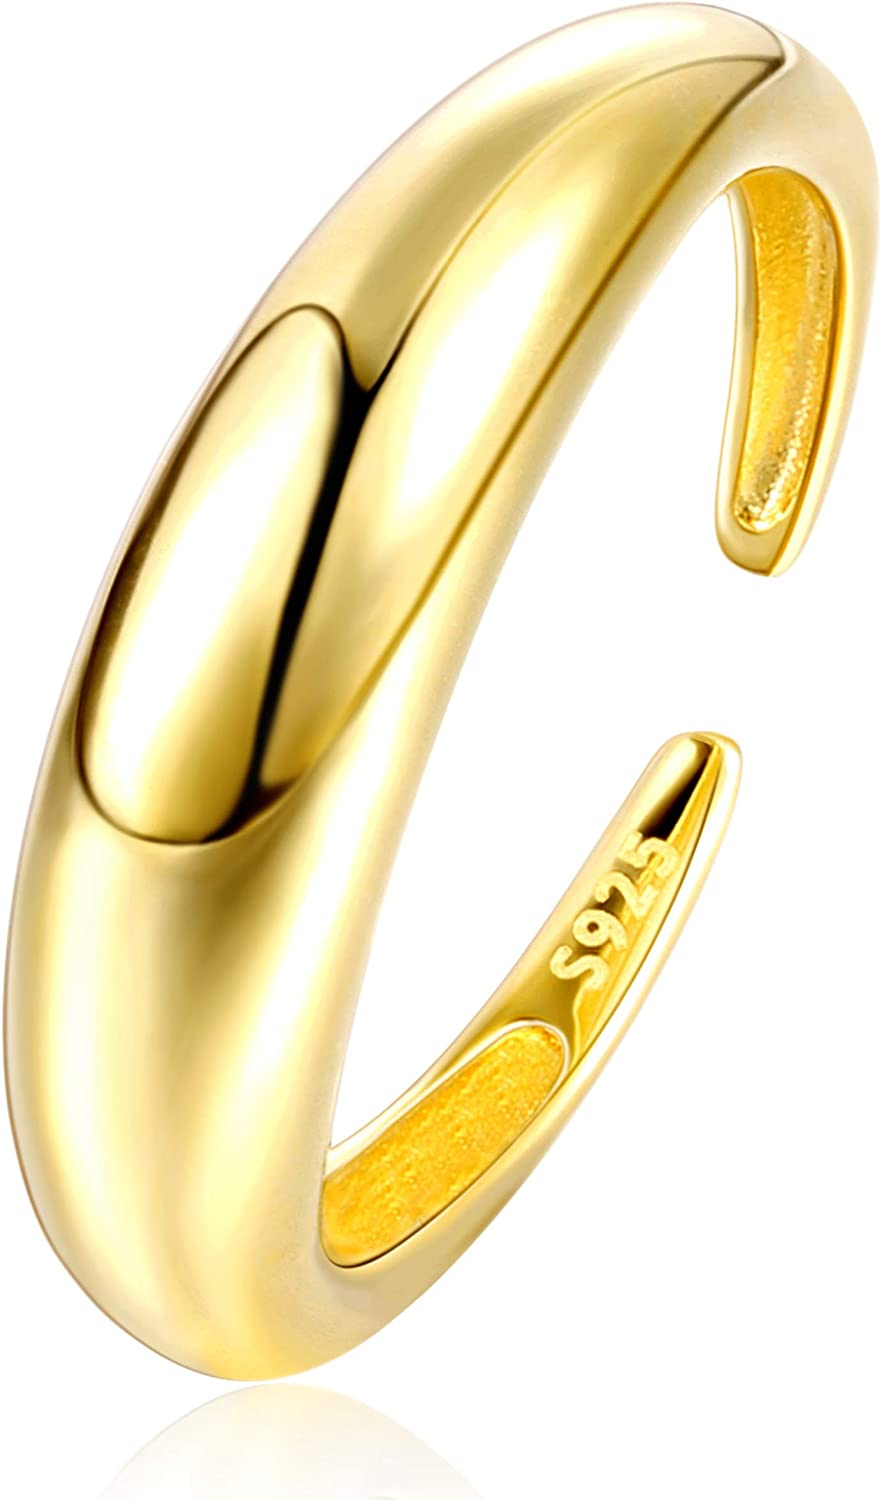 18K Gold Plated Simple and Bold Chic Minimalist Band Rings Stackable Rings